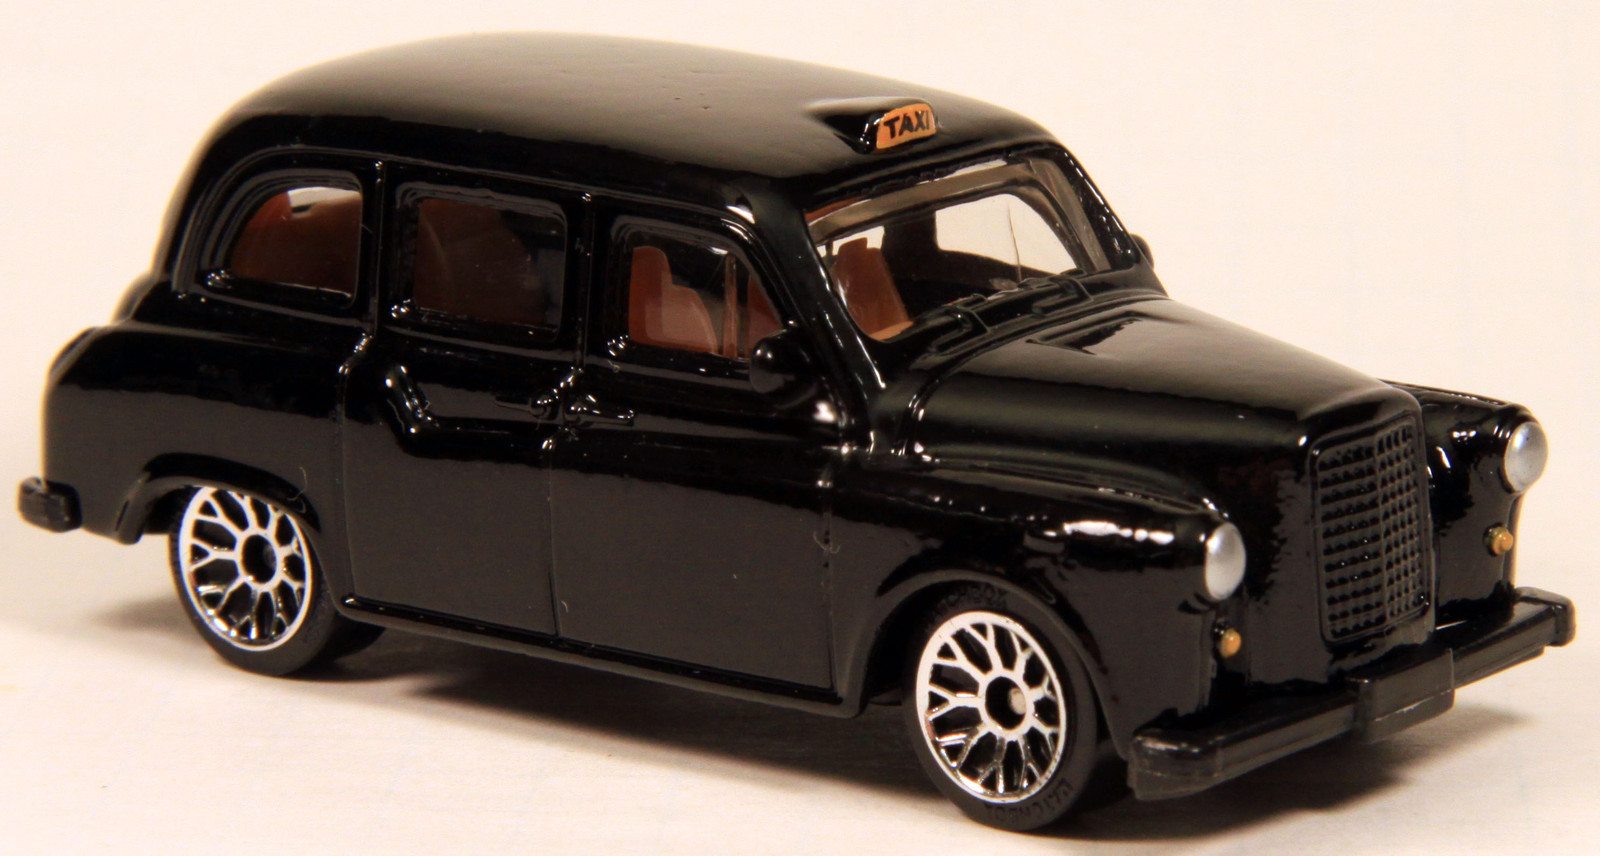 London Taxi Matchbox Cars Wiki Fandom Powered By Wikia